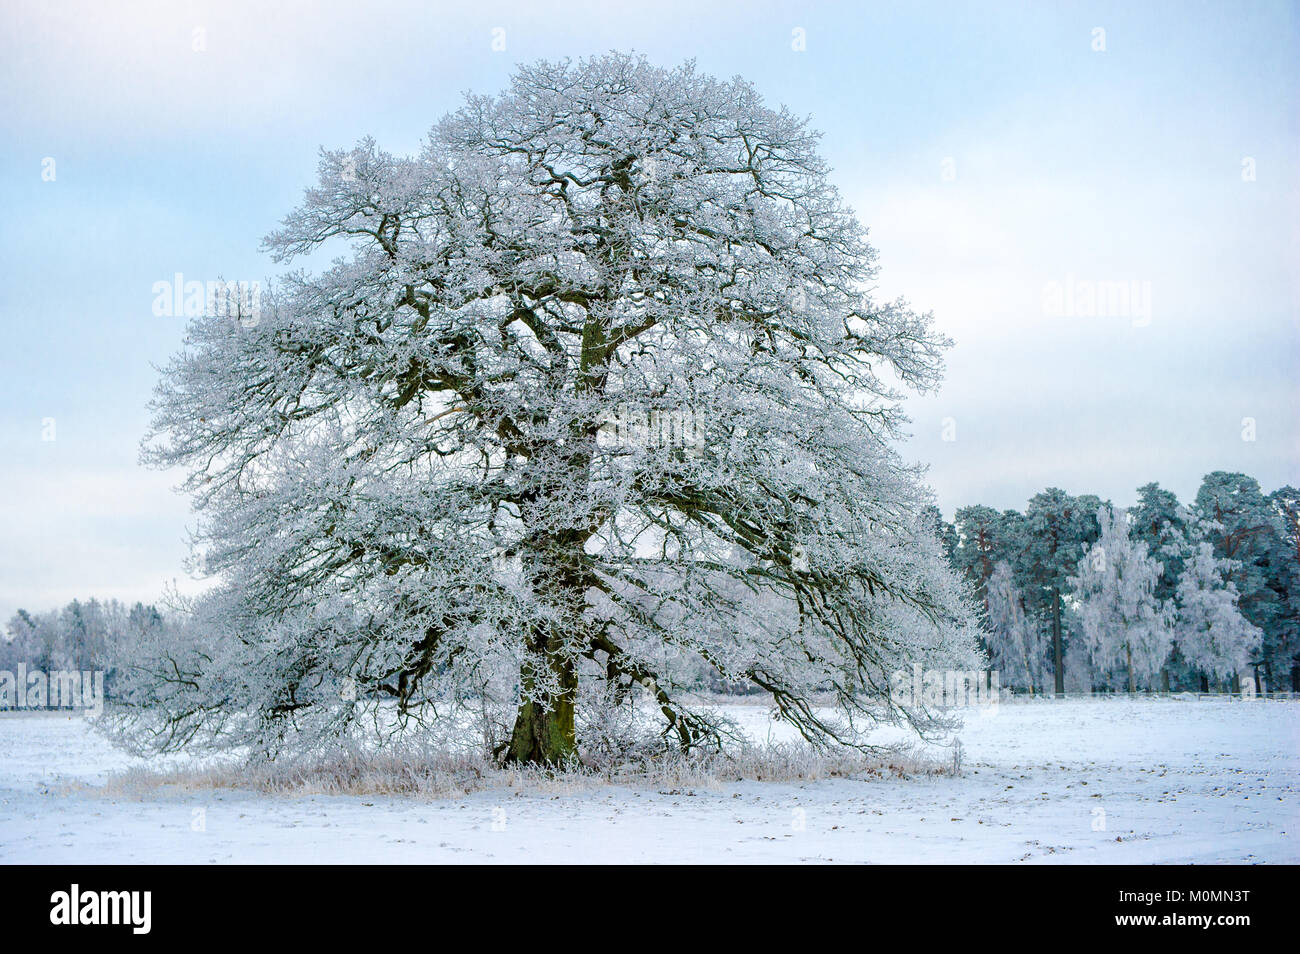 A Frosty Grand Old Oak a january day in Uppland, Sweden - Stock Image